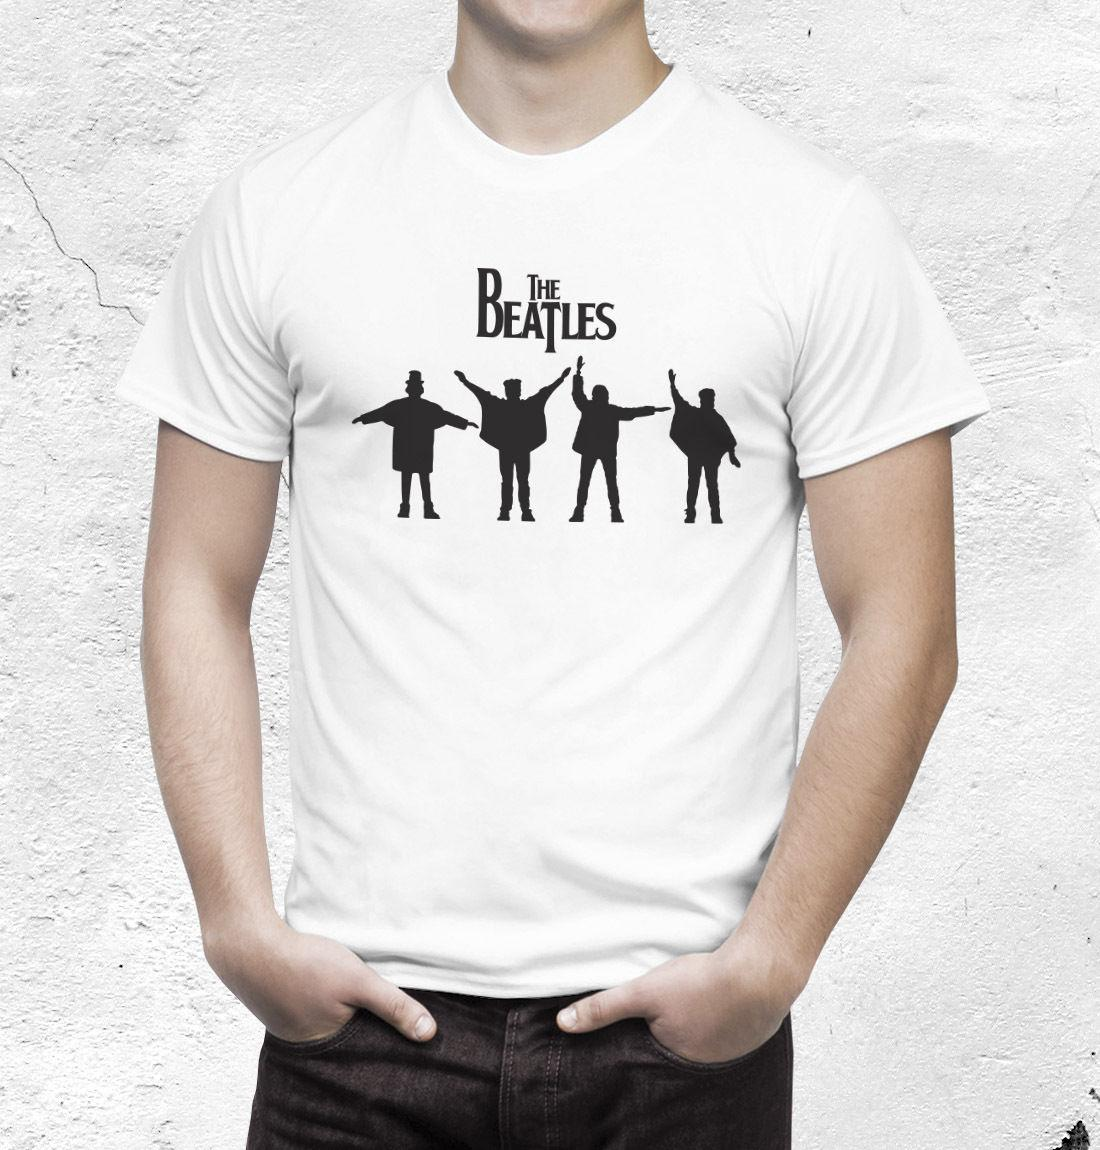 da7d46f14f The Beatles Camiseta John Lennon Paul McCartney Camiseta Ti Shirt Best T  Shirt Sites From Goodmood061